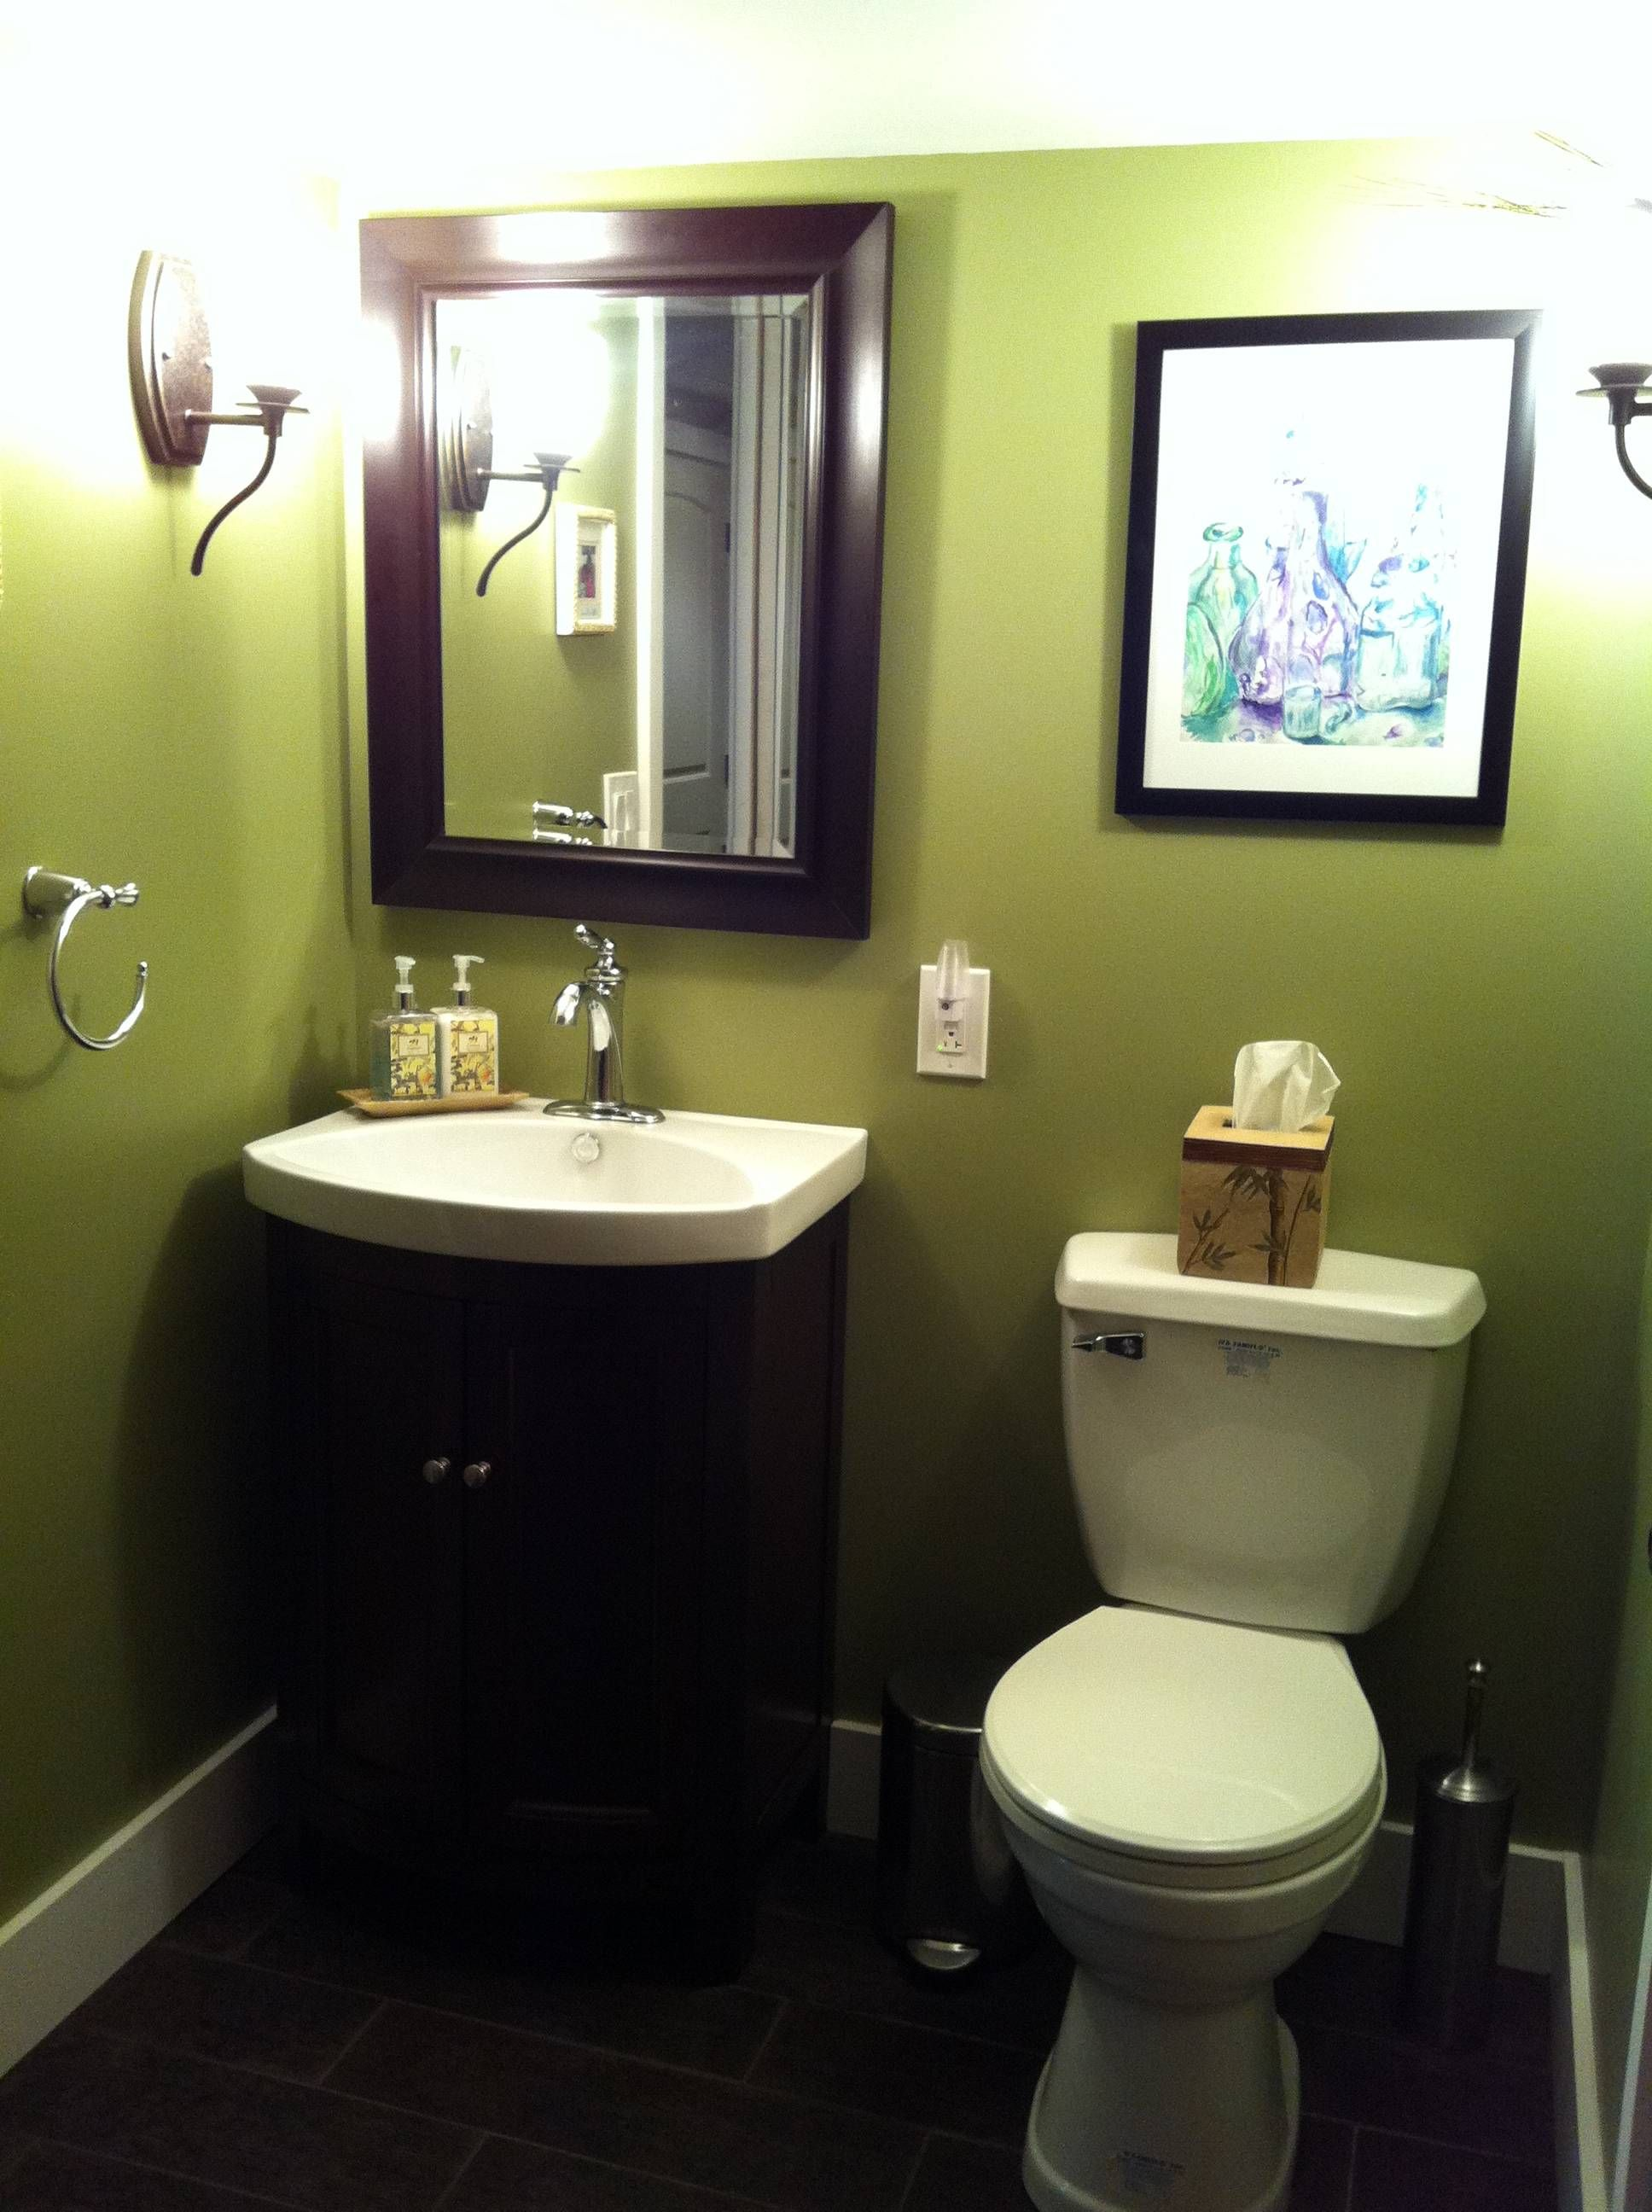 Powder room bathroom remodel ideas pinterest Bathroom remodel pinterest